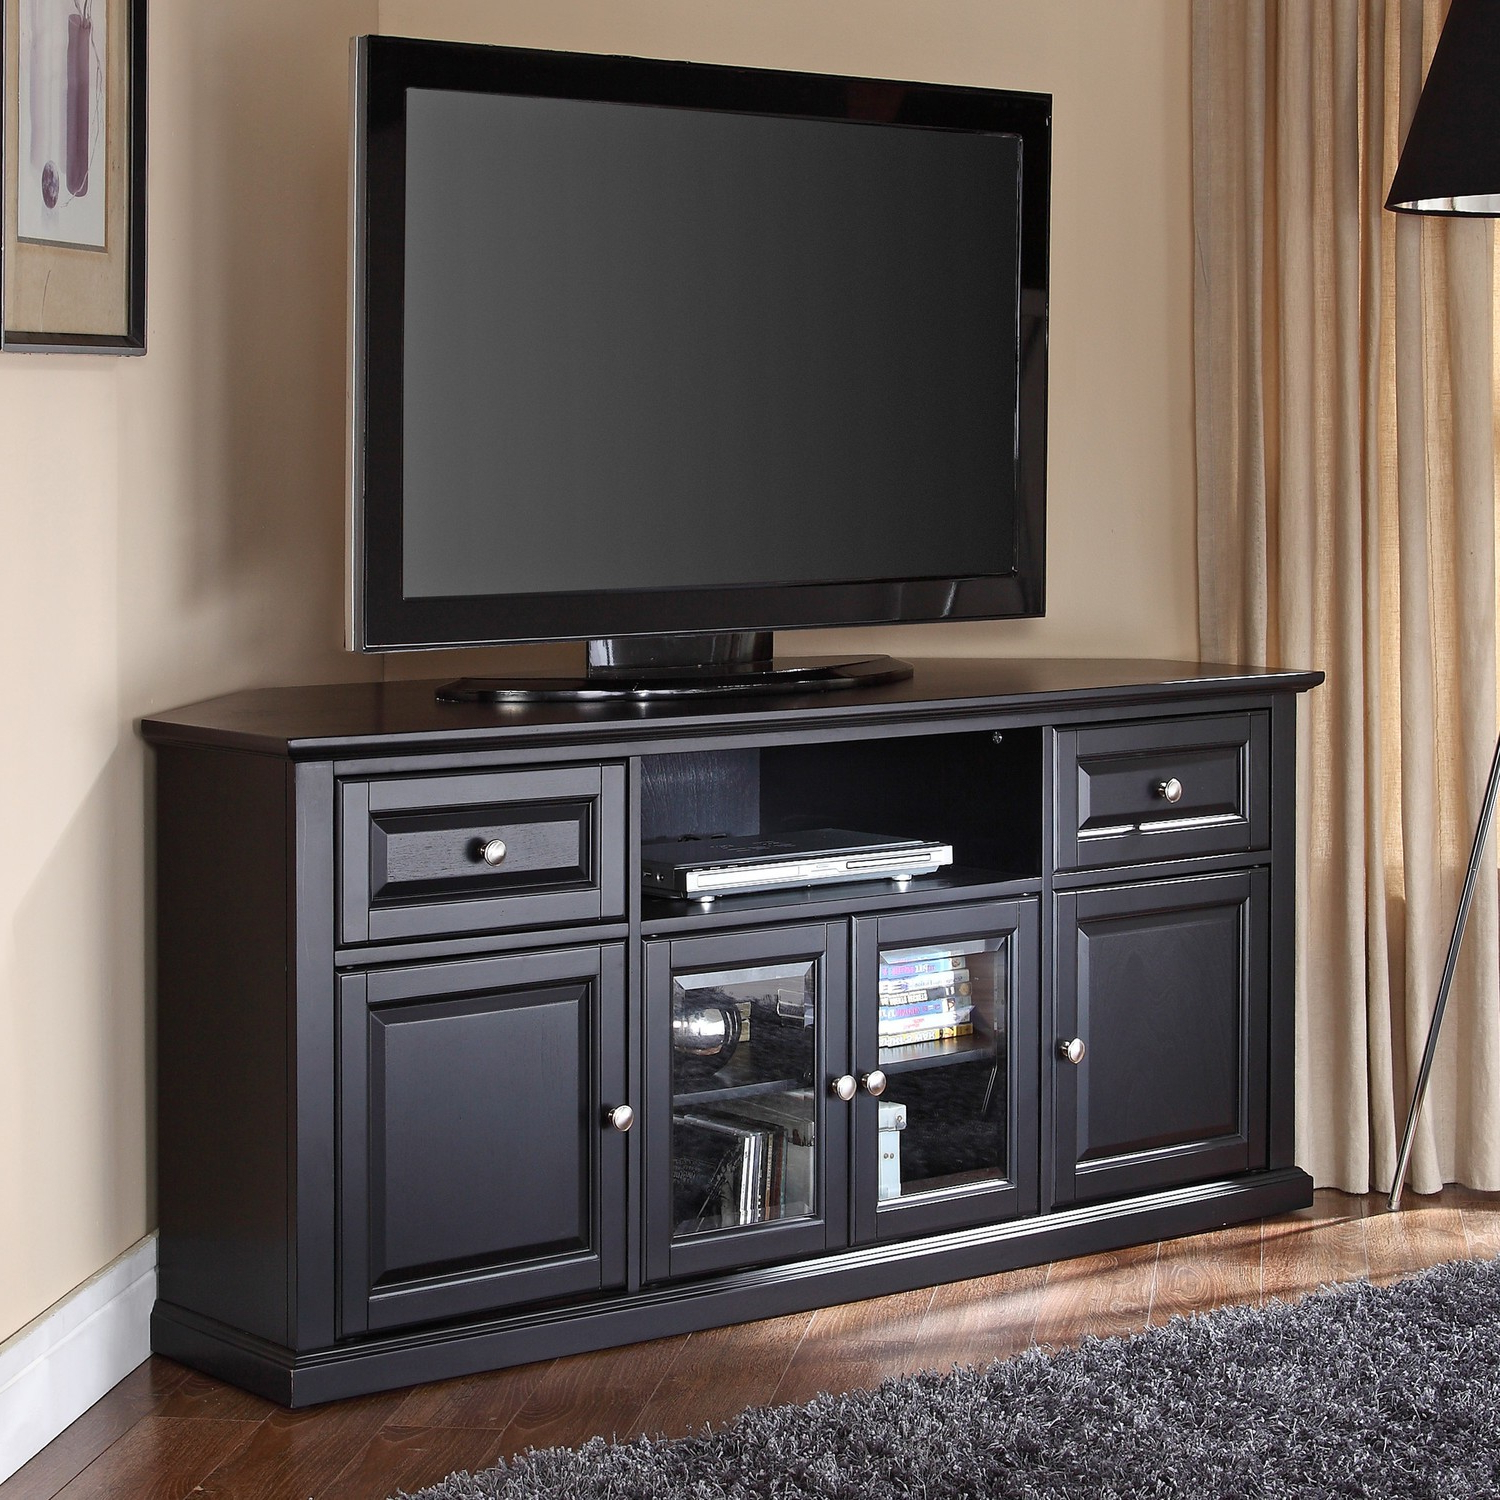 Recent Oak Tv Cabinets For Flat Screens Throughout Wood Tv Stand With Mount Flat Screen Tv Stand Tv Cabinet Design (View 17 of 20)